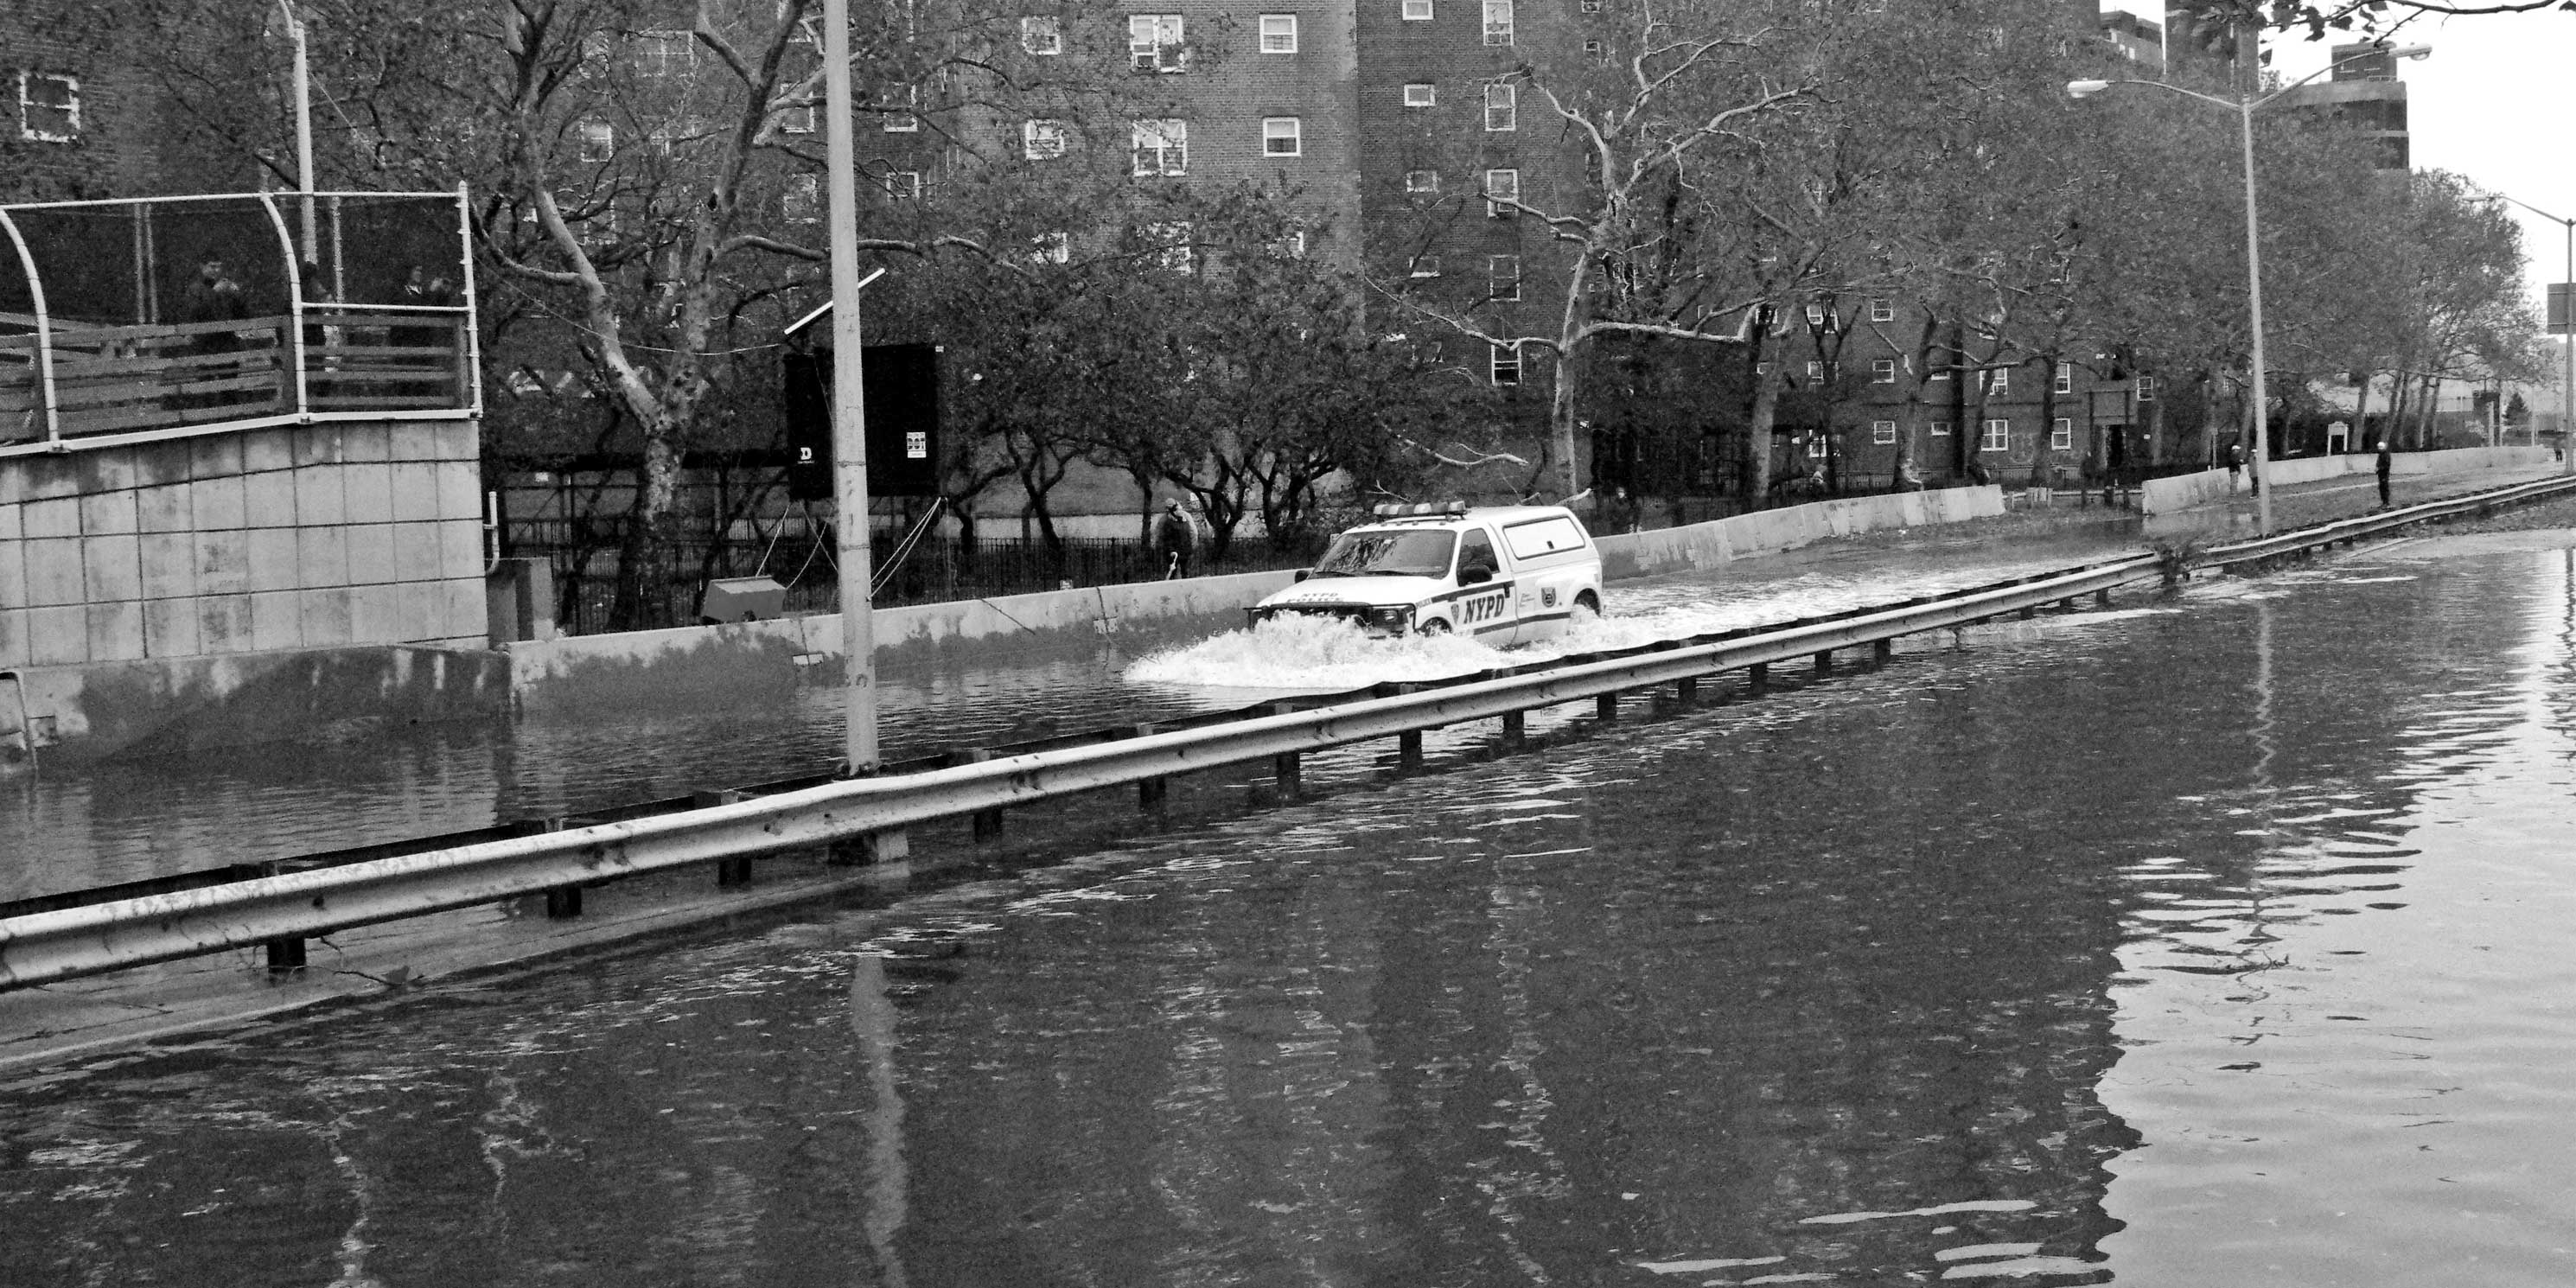 A NYPD van drives down the FDR flooded from Hurricane Sandy in 2012. Photo: Wikimedia Commons, David Shankbone.